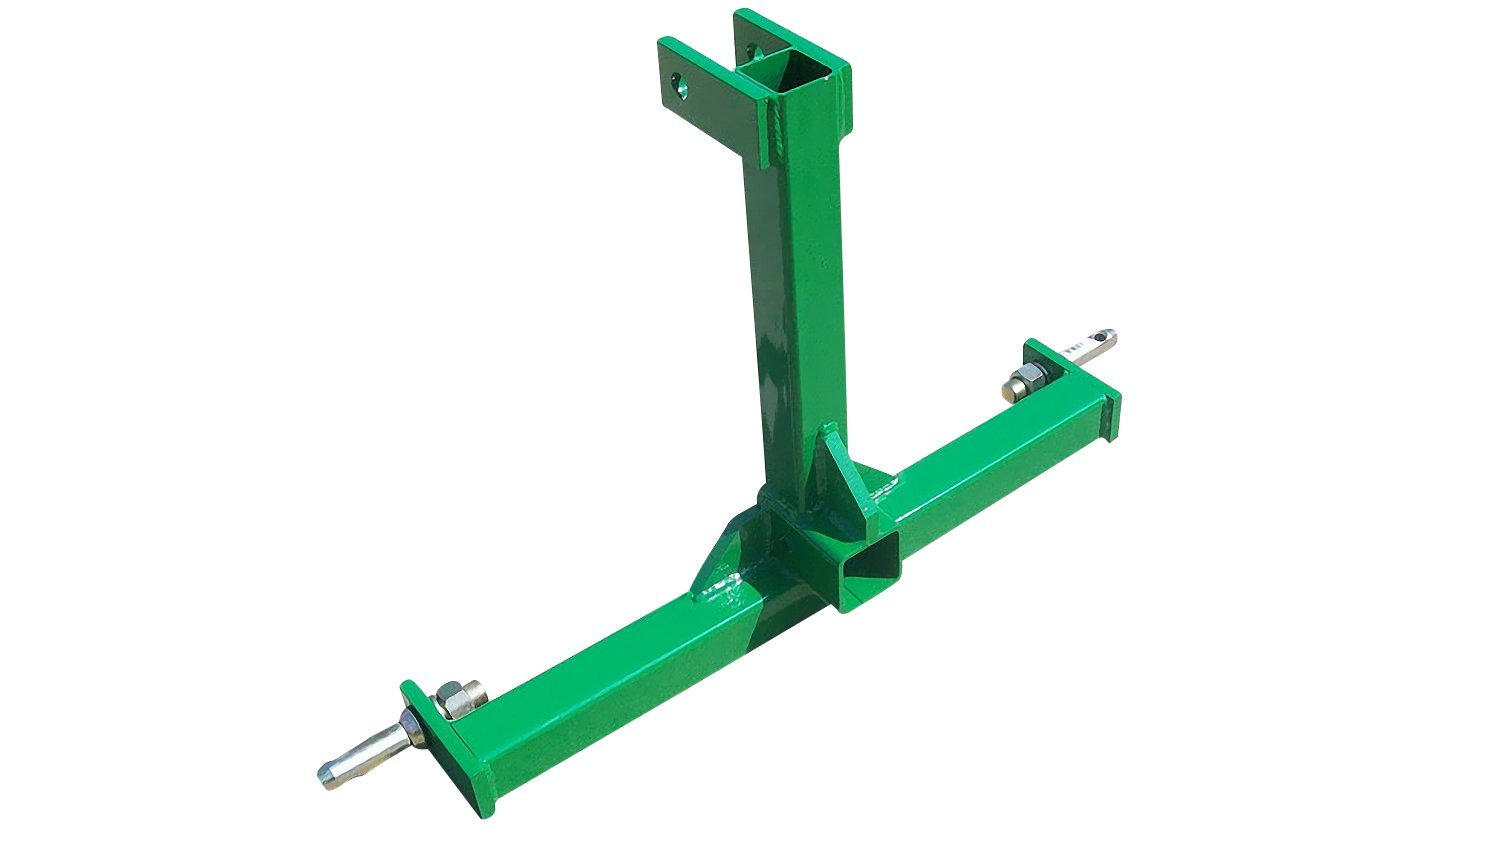 Heavy Duty 3 Point Category 1 Drawbar Receiver Hitch Tow Bar - Compatible with John Deere Green by M.G.E. Products